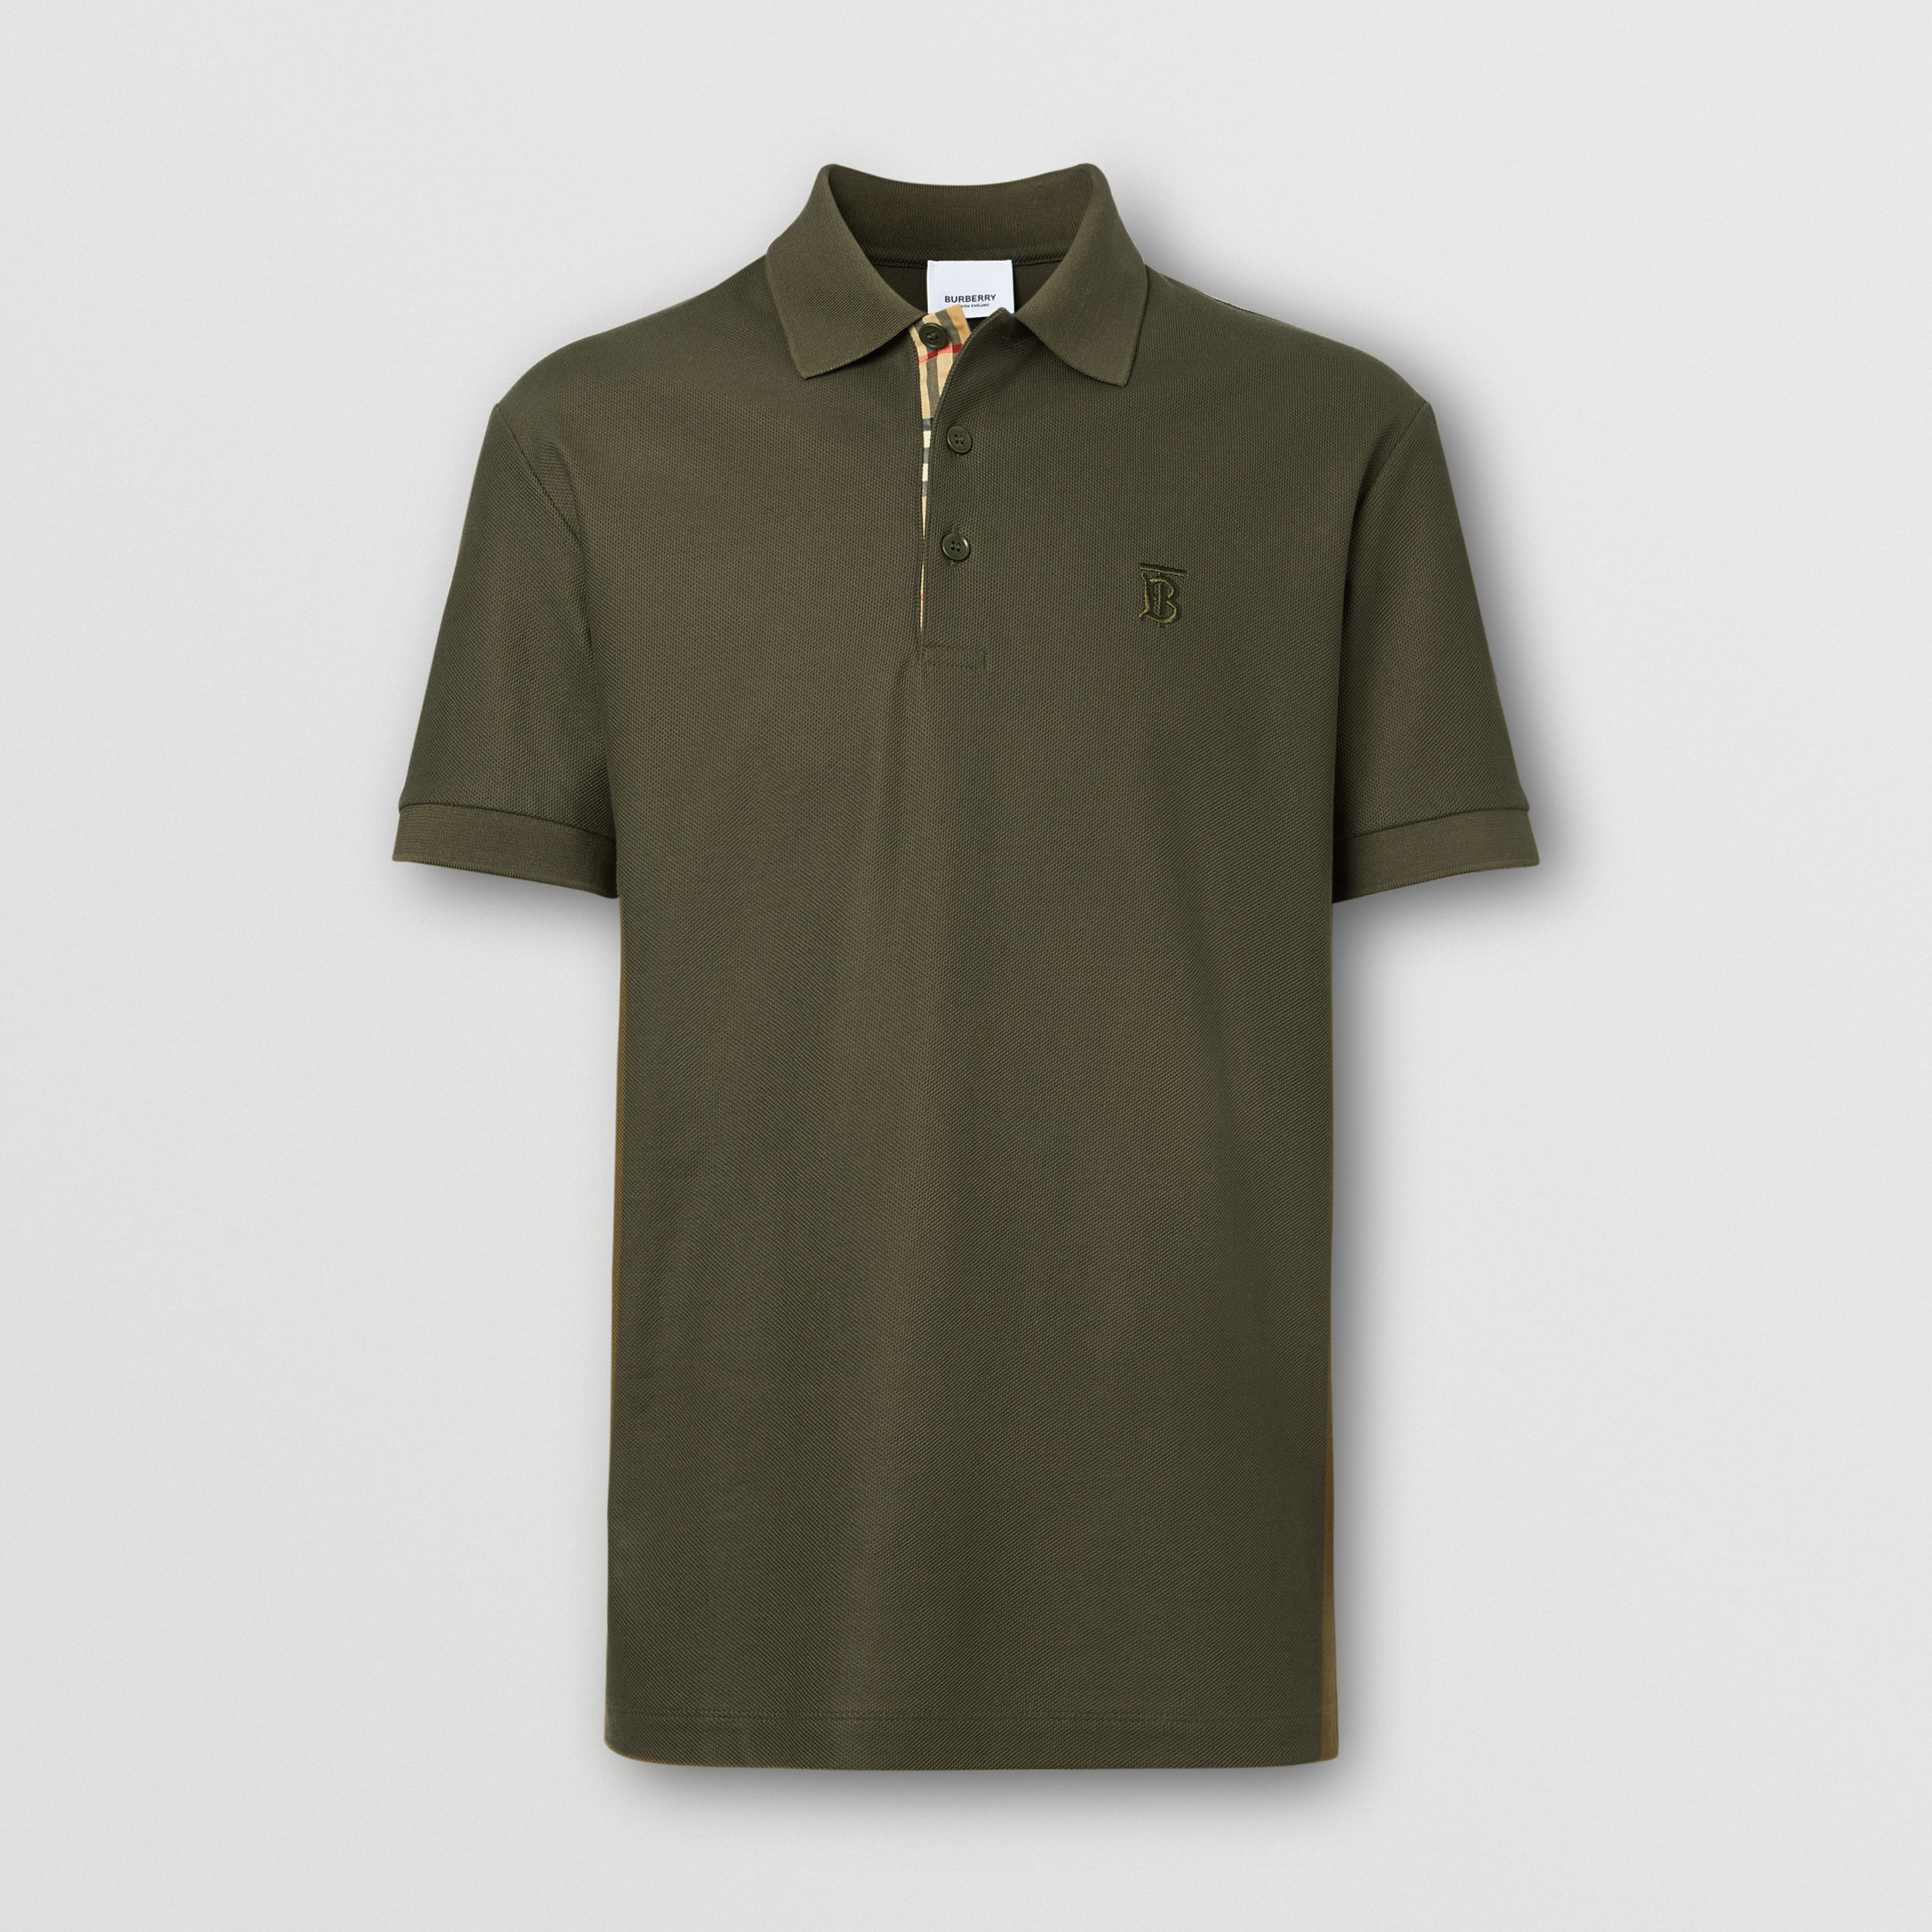 Monogram Motif Cotton Piqué Polo Shirt in Dark Olive - Men | Burberry - 4